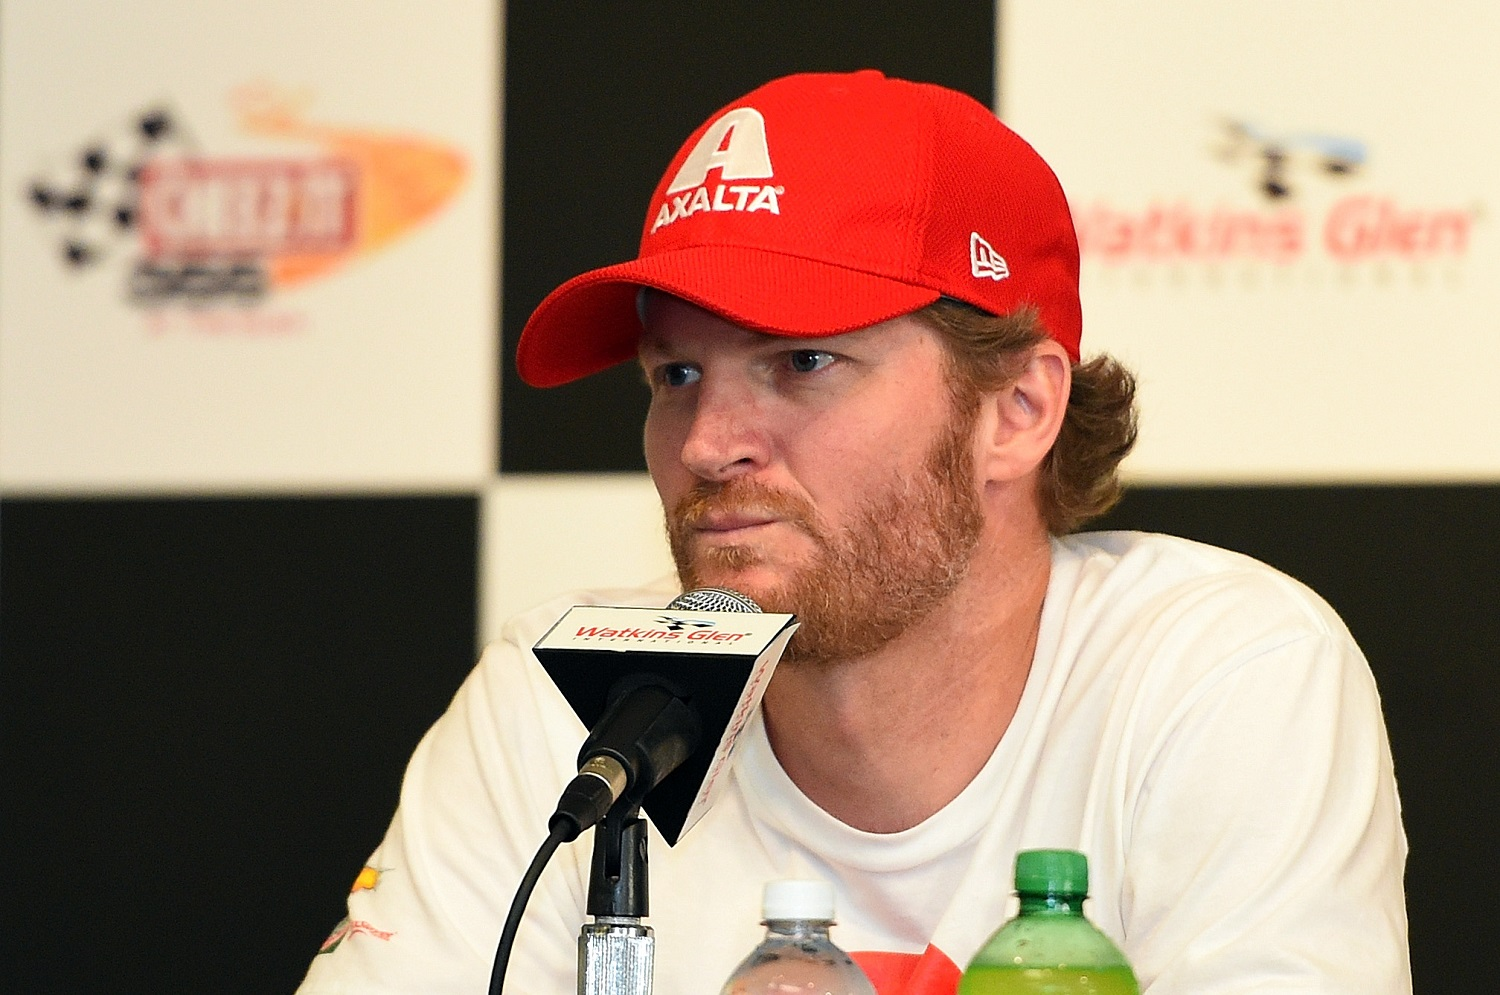 Dale Earnhardt Jr.'s Racing Future Depends Upon a Key NASCAR Change